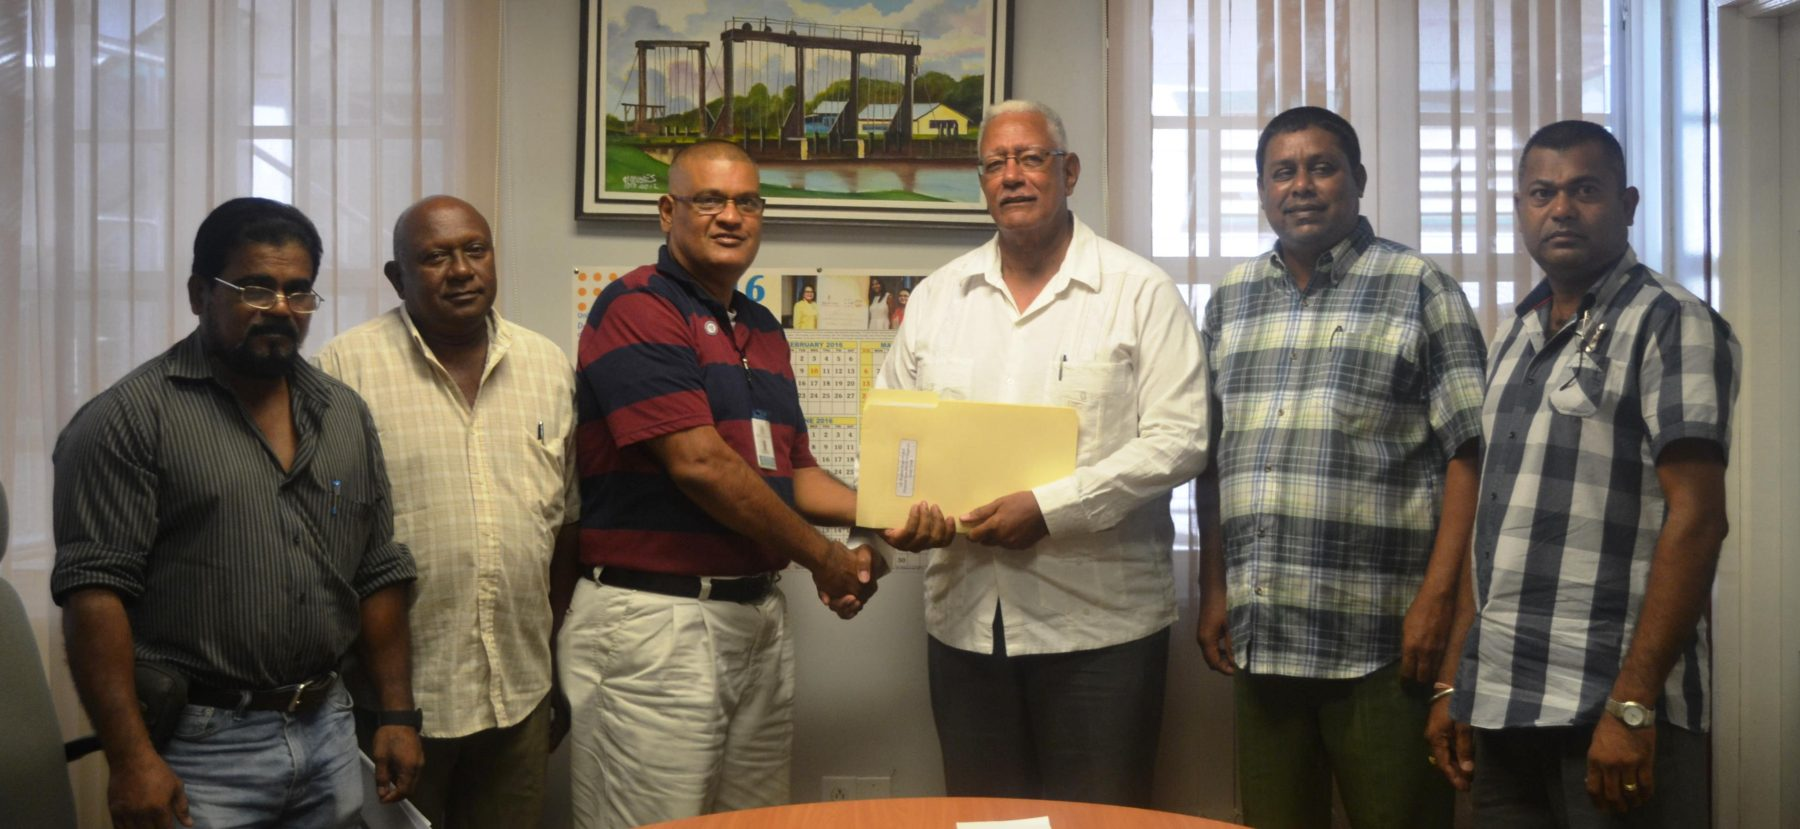 Agriculture Minister Noel Holder (third from right) receiving the plan from Gobin Harbhajan, the Prime Minister's representative. (Ministry of Agriculture photo)